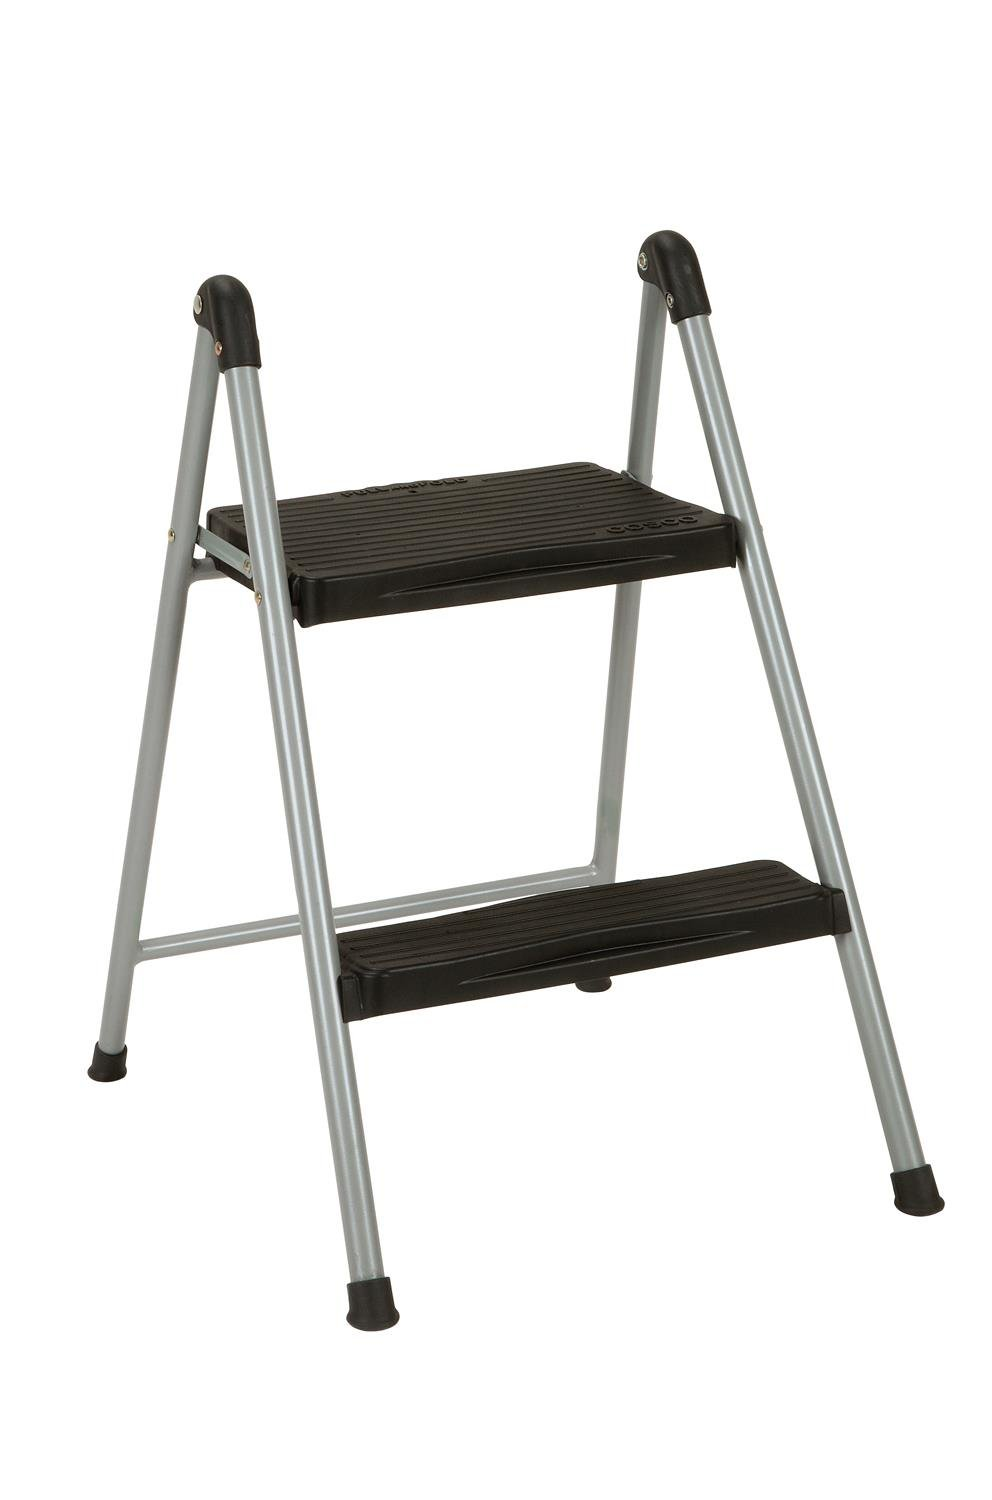 Cosco Dorel Industries Lightweight Folding Steel Step Stool, Two Step by Cosco